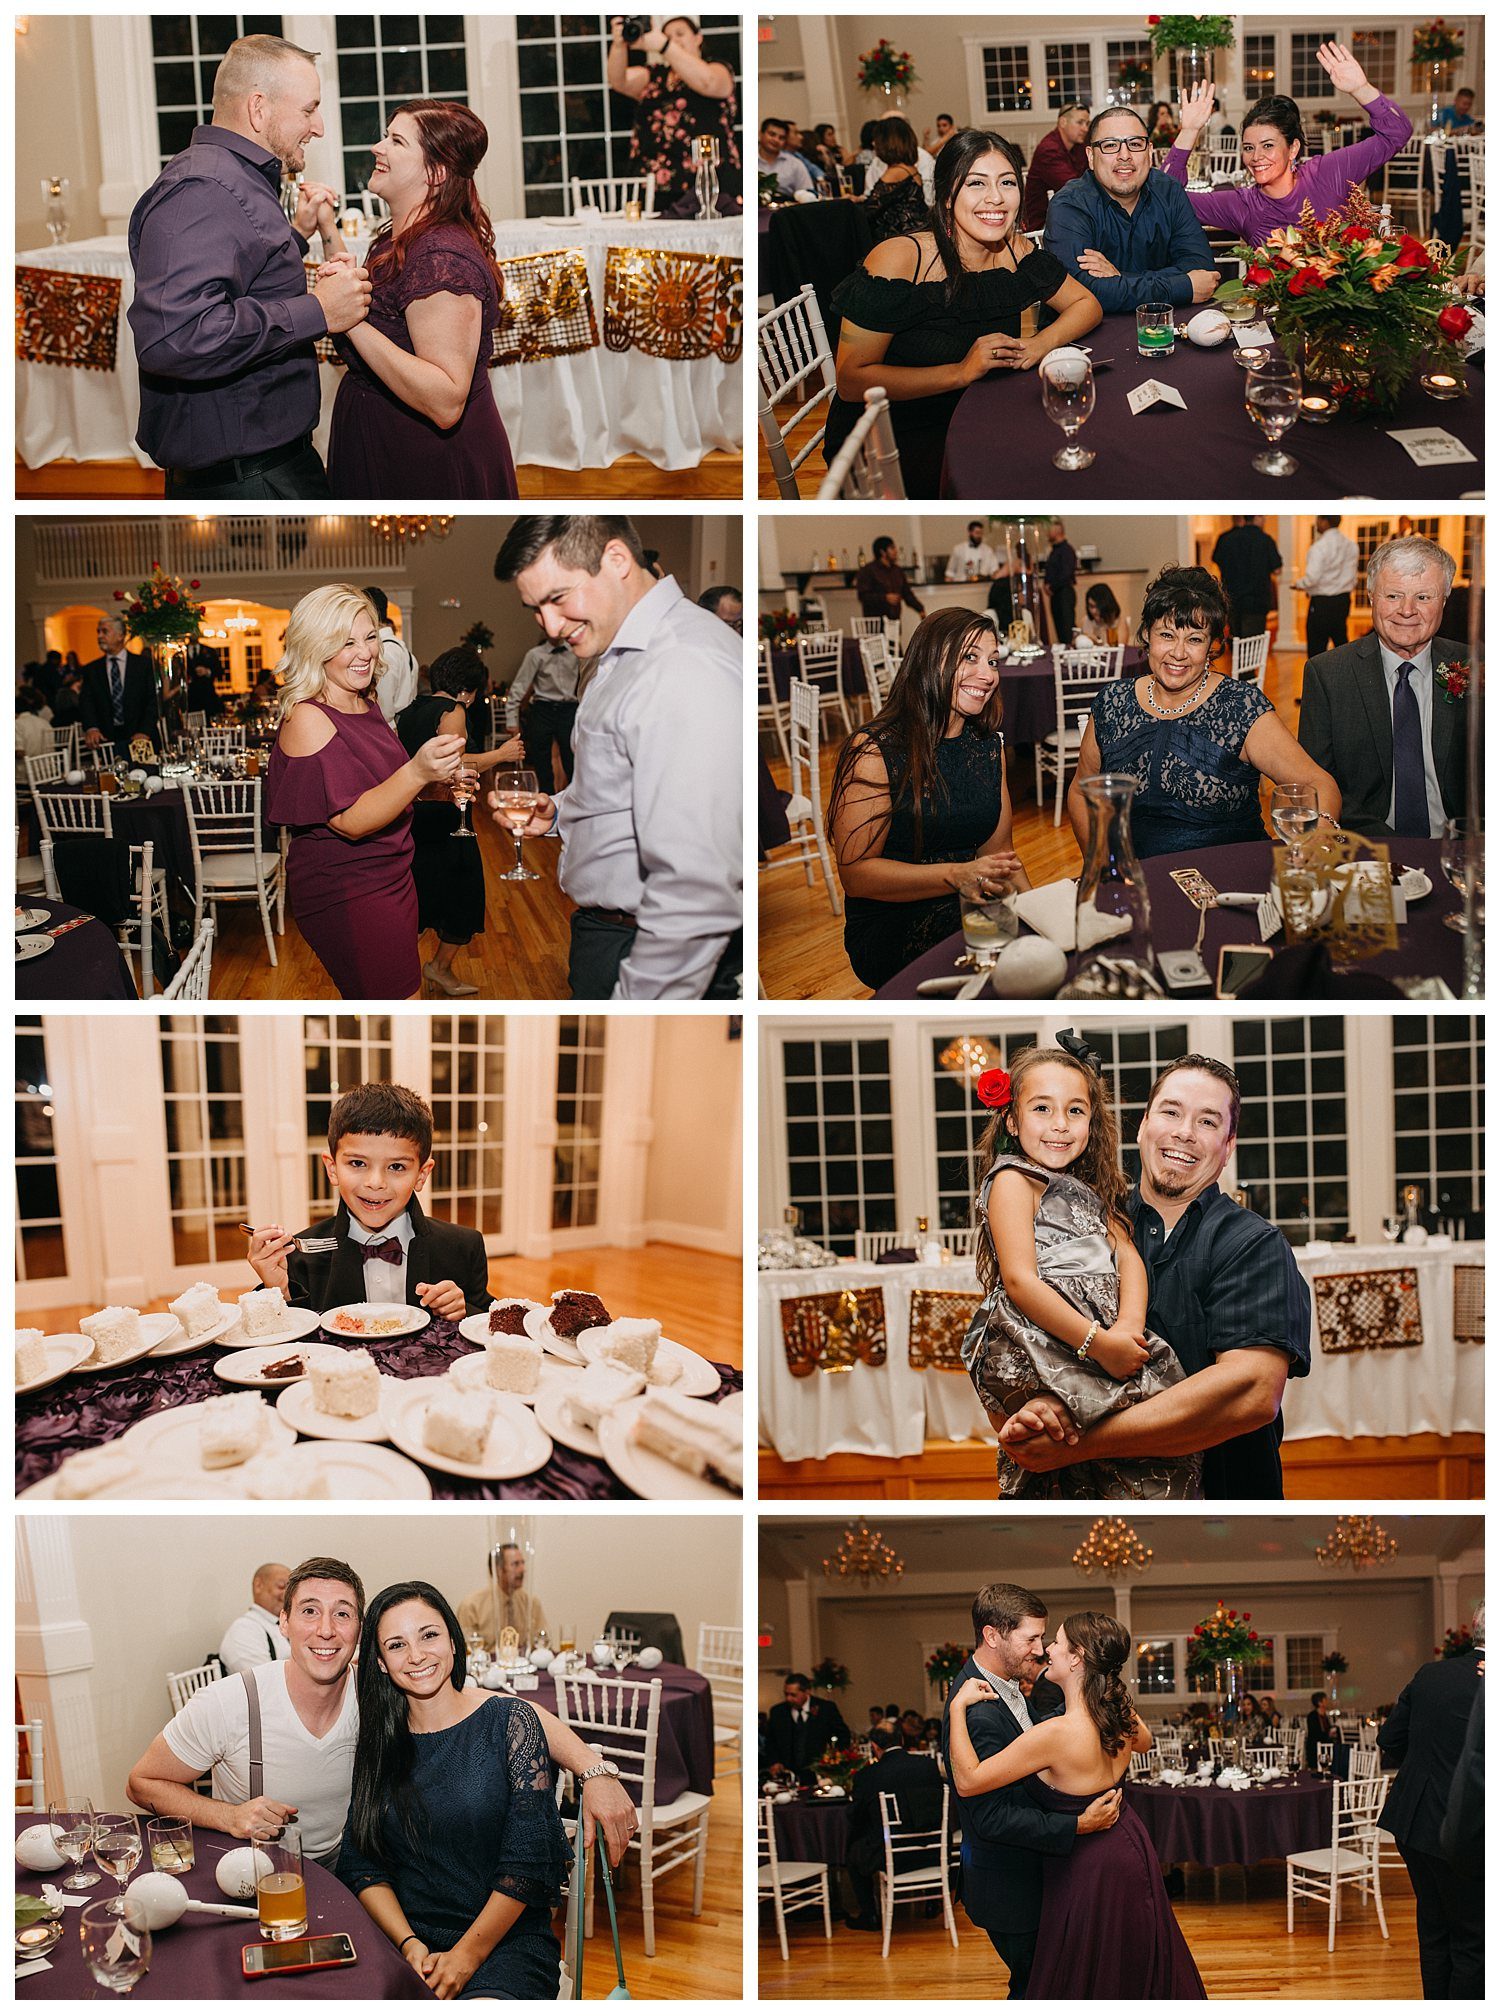 Kelsey_Diane_Photography_Hawthorne_House_Parkville_Kansas_City_Wedding_Veronica_Pat_0066.jpg